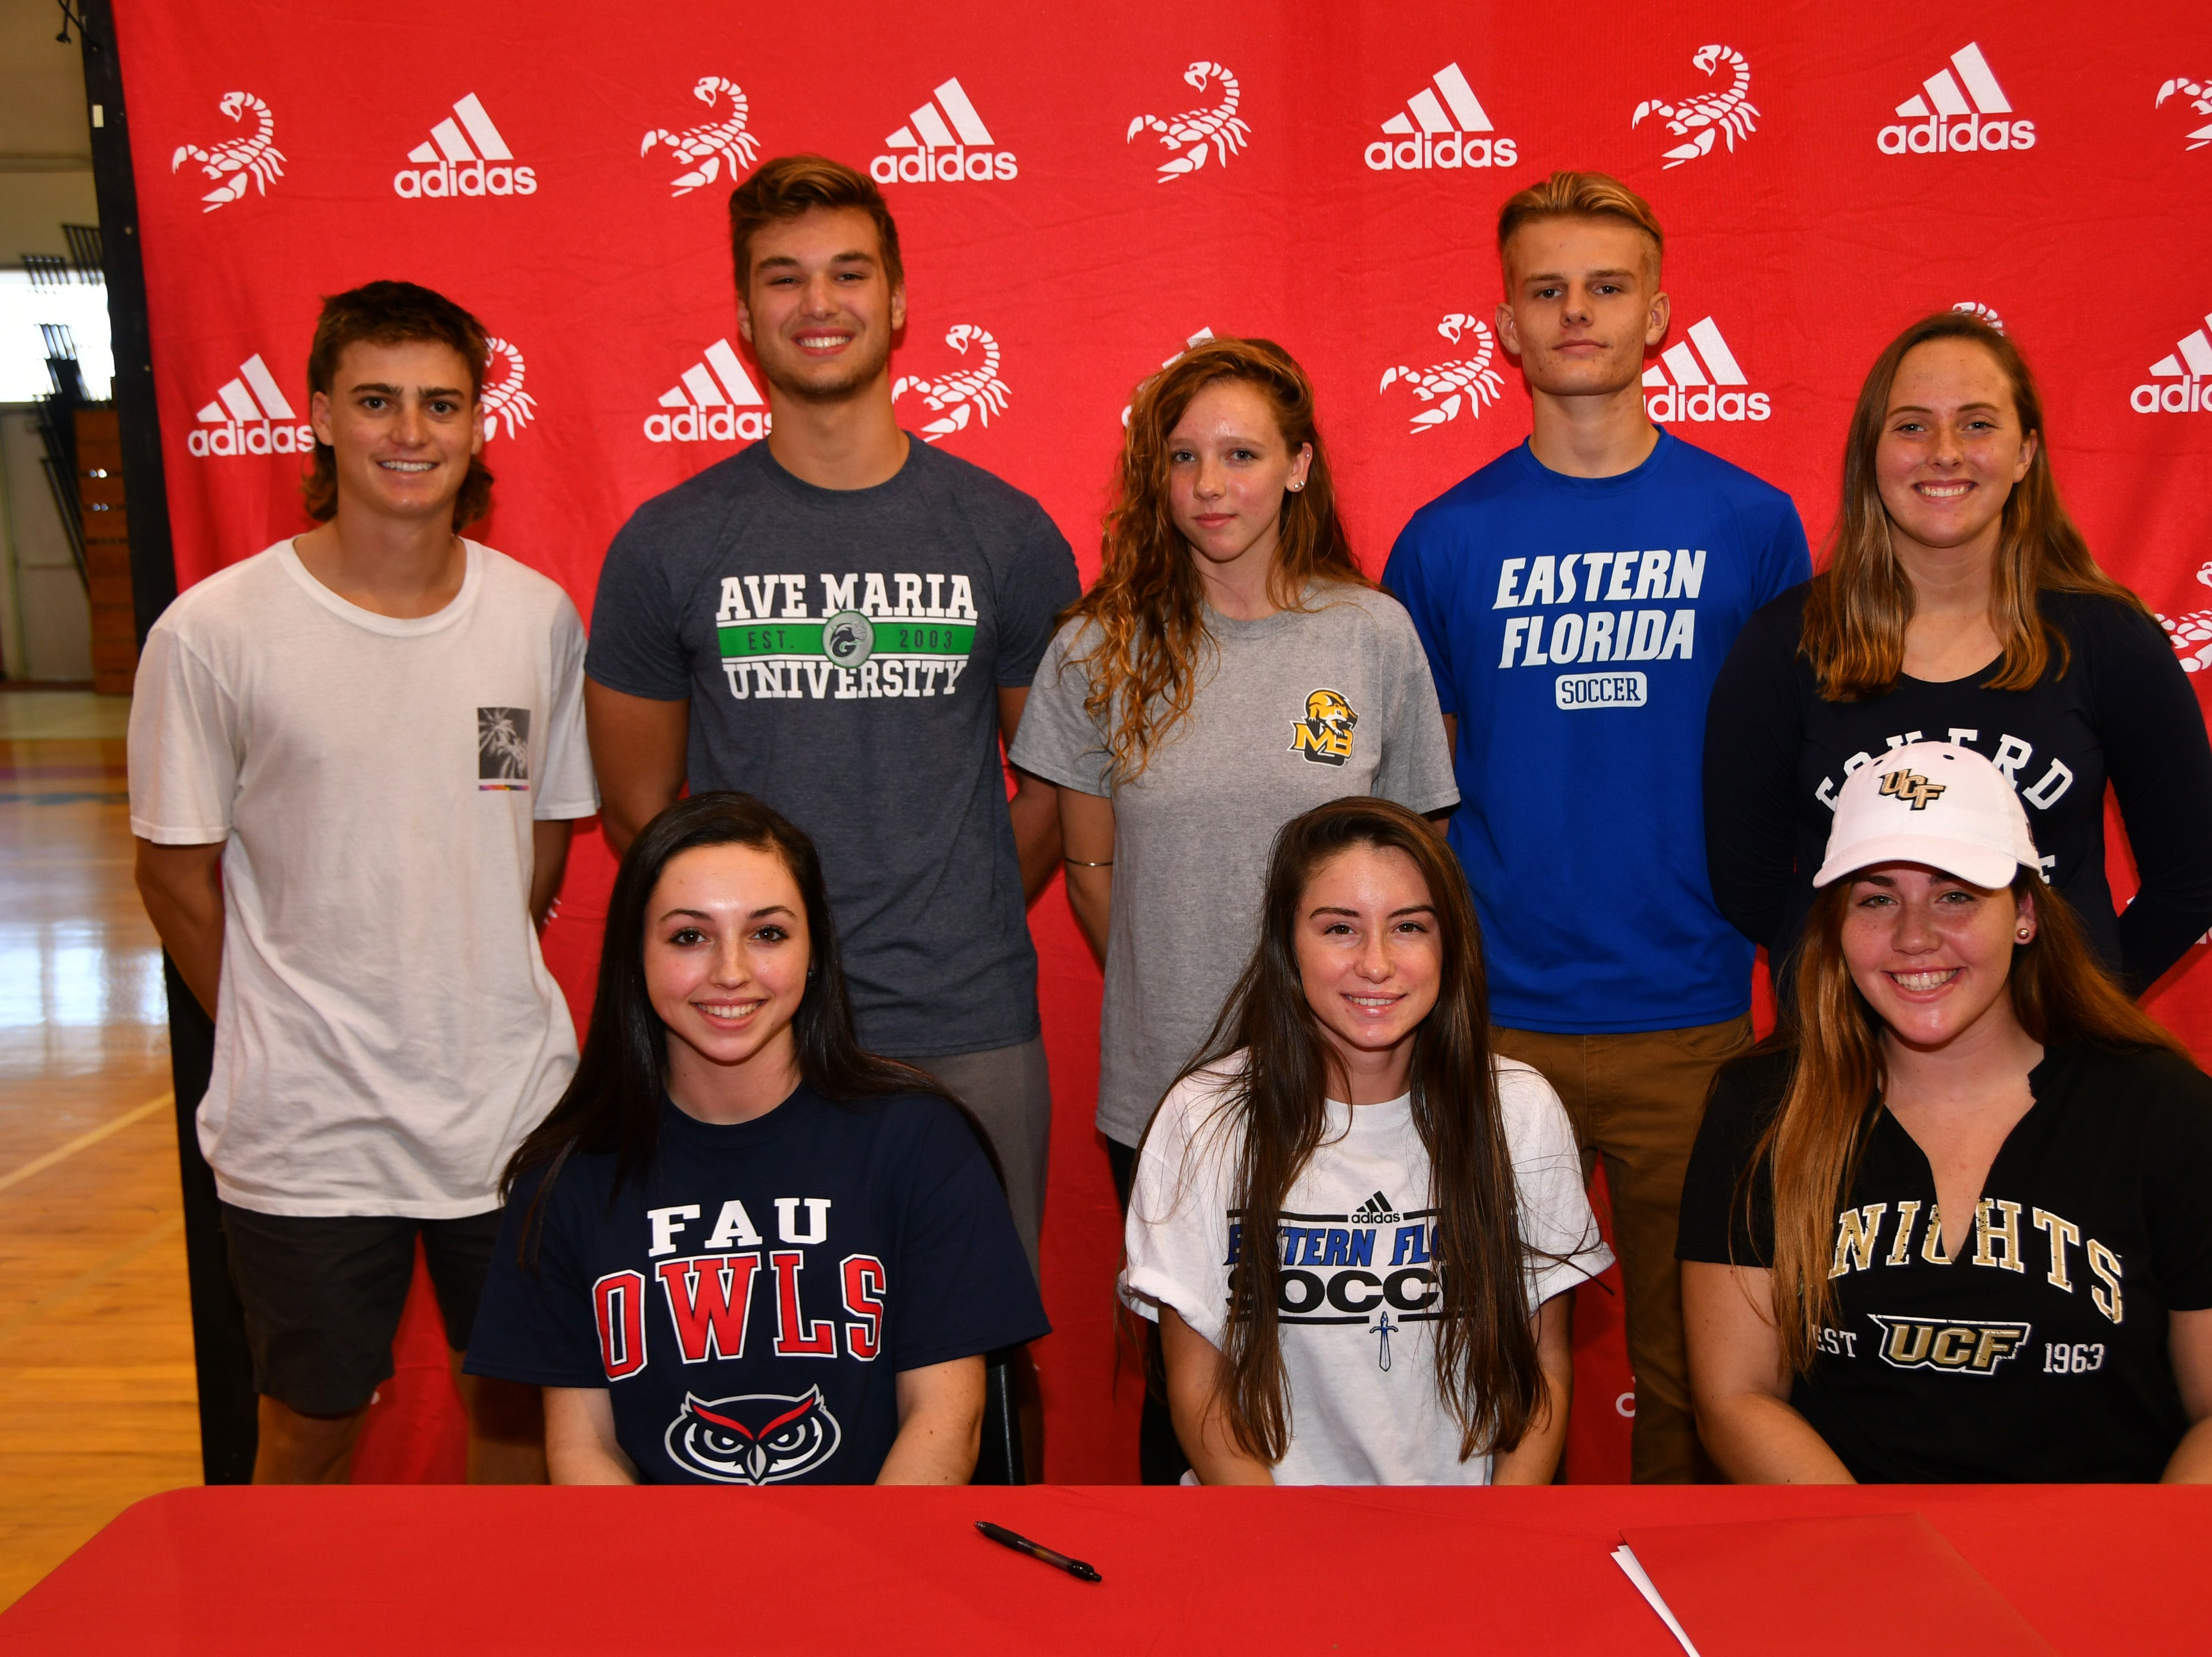 Satellite Had seven students sign letters of intent on Wednesday. Front row seated: Marie Groppel, Melissa Marler and Karly Smith. Back row: Zack Kornick, Jackson Hinkell, Kloey Marsh, John Stromenger and Morgan Flemming.